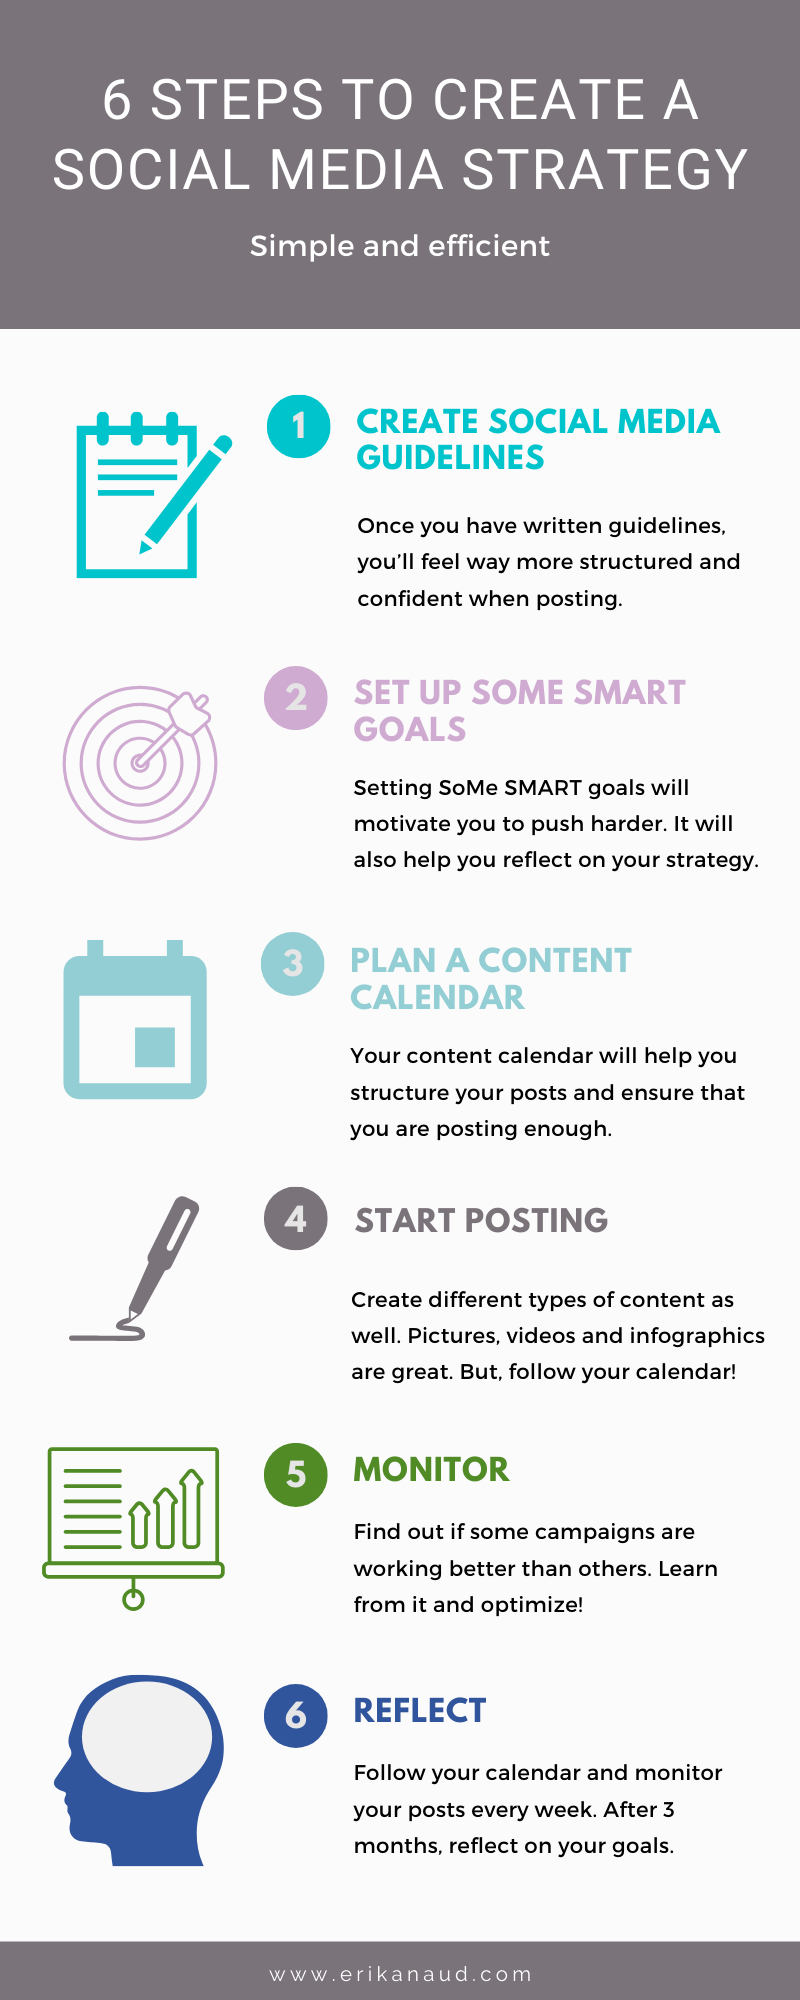 6 steps to create a social media strategy - infographic